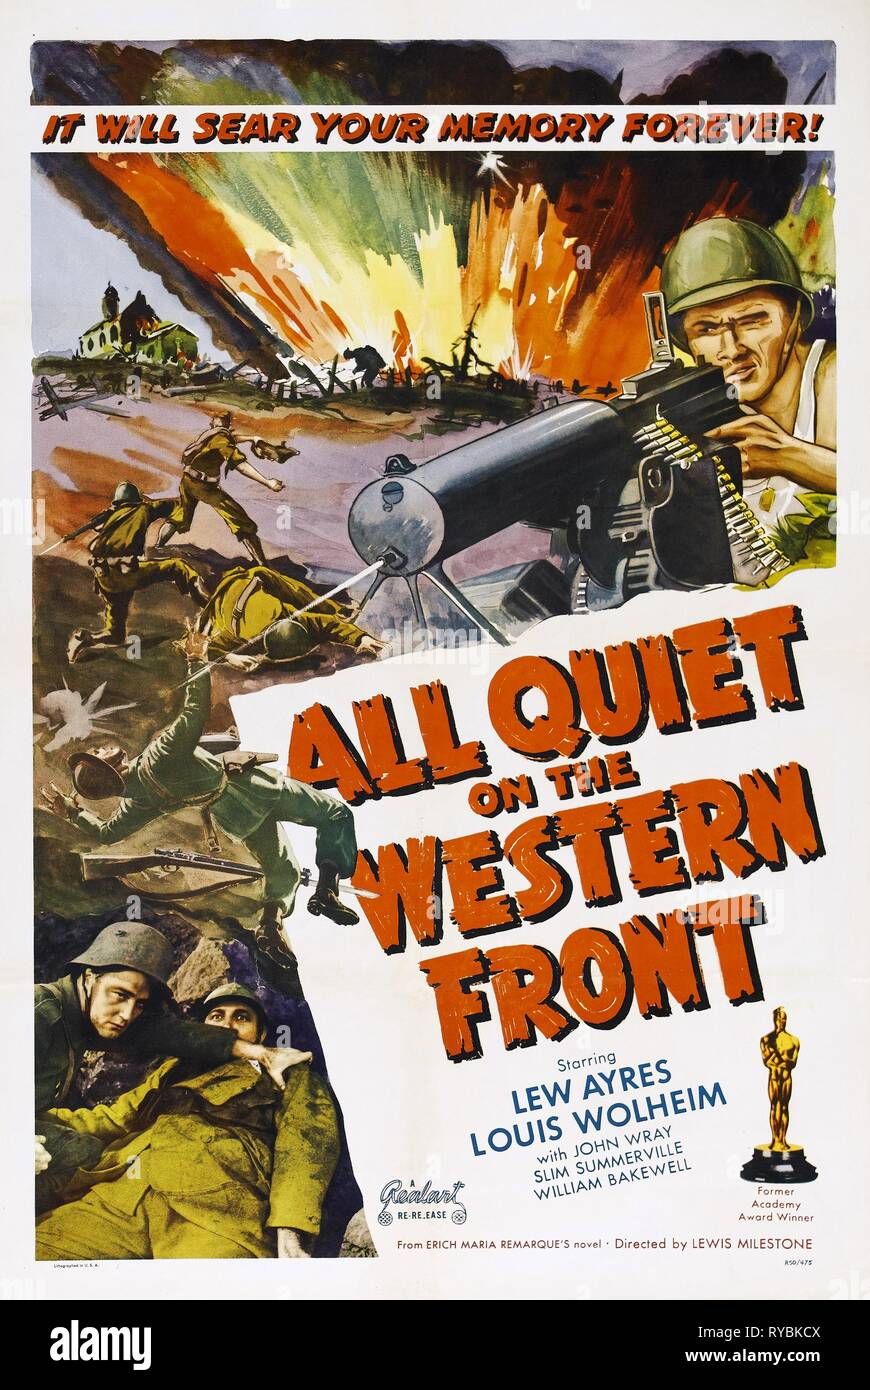 MOVIE POSTER, ALL QUIET ON THE WESTERN FRONT, 1930 - Stock Image